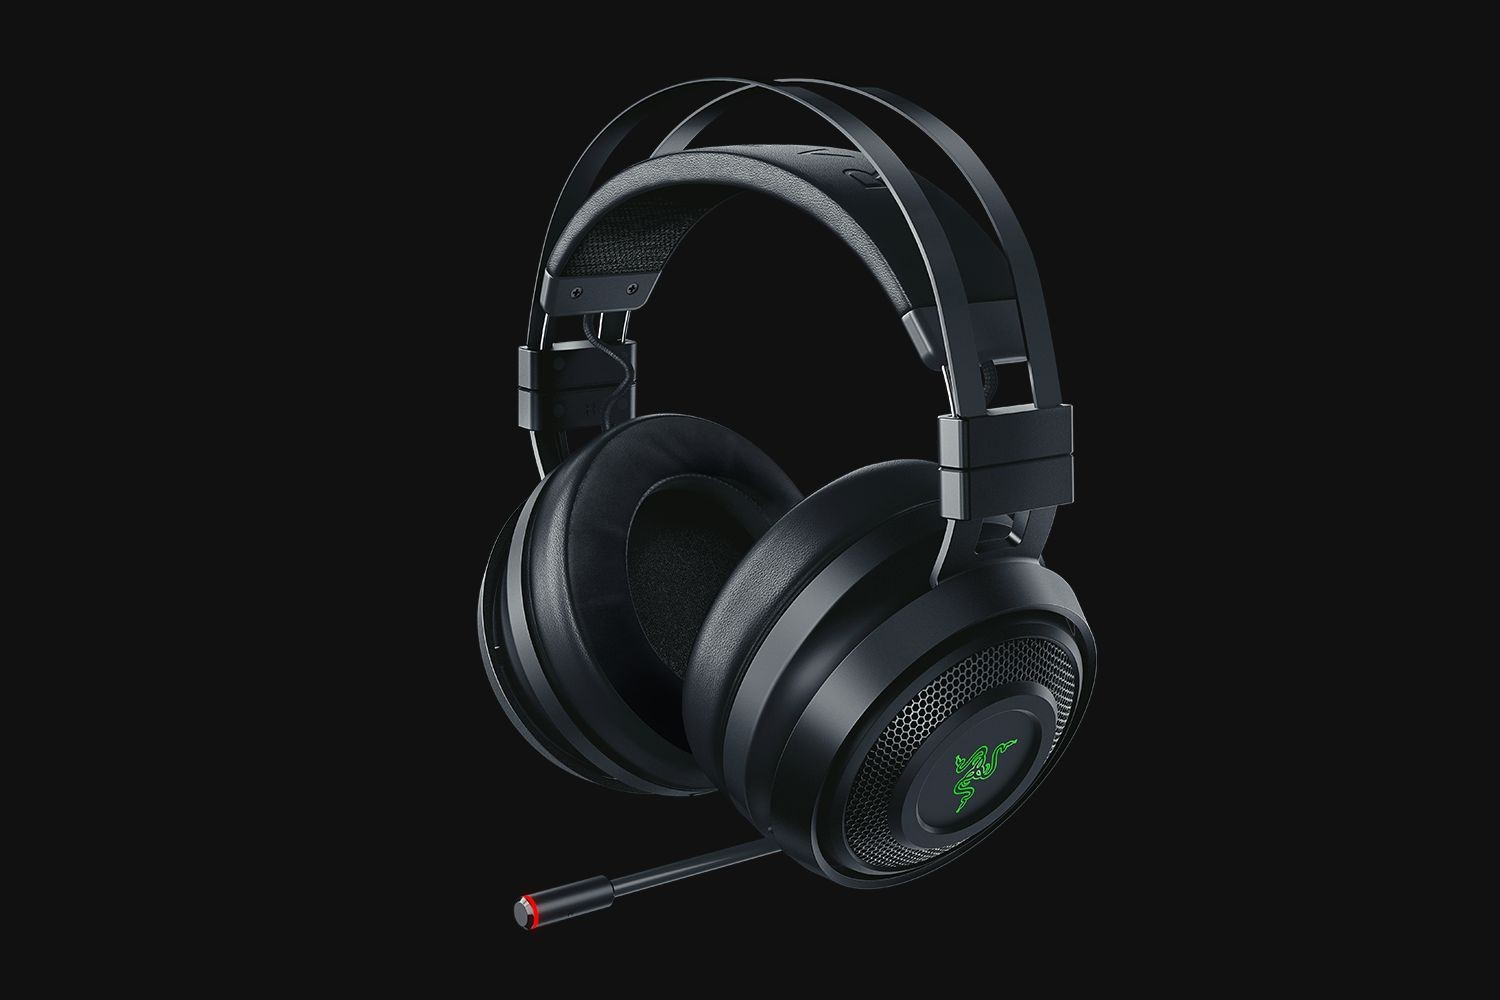 Razer NARI wireless headset